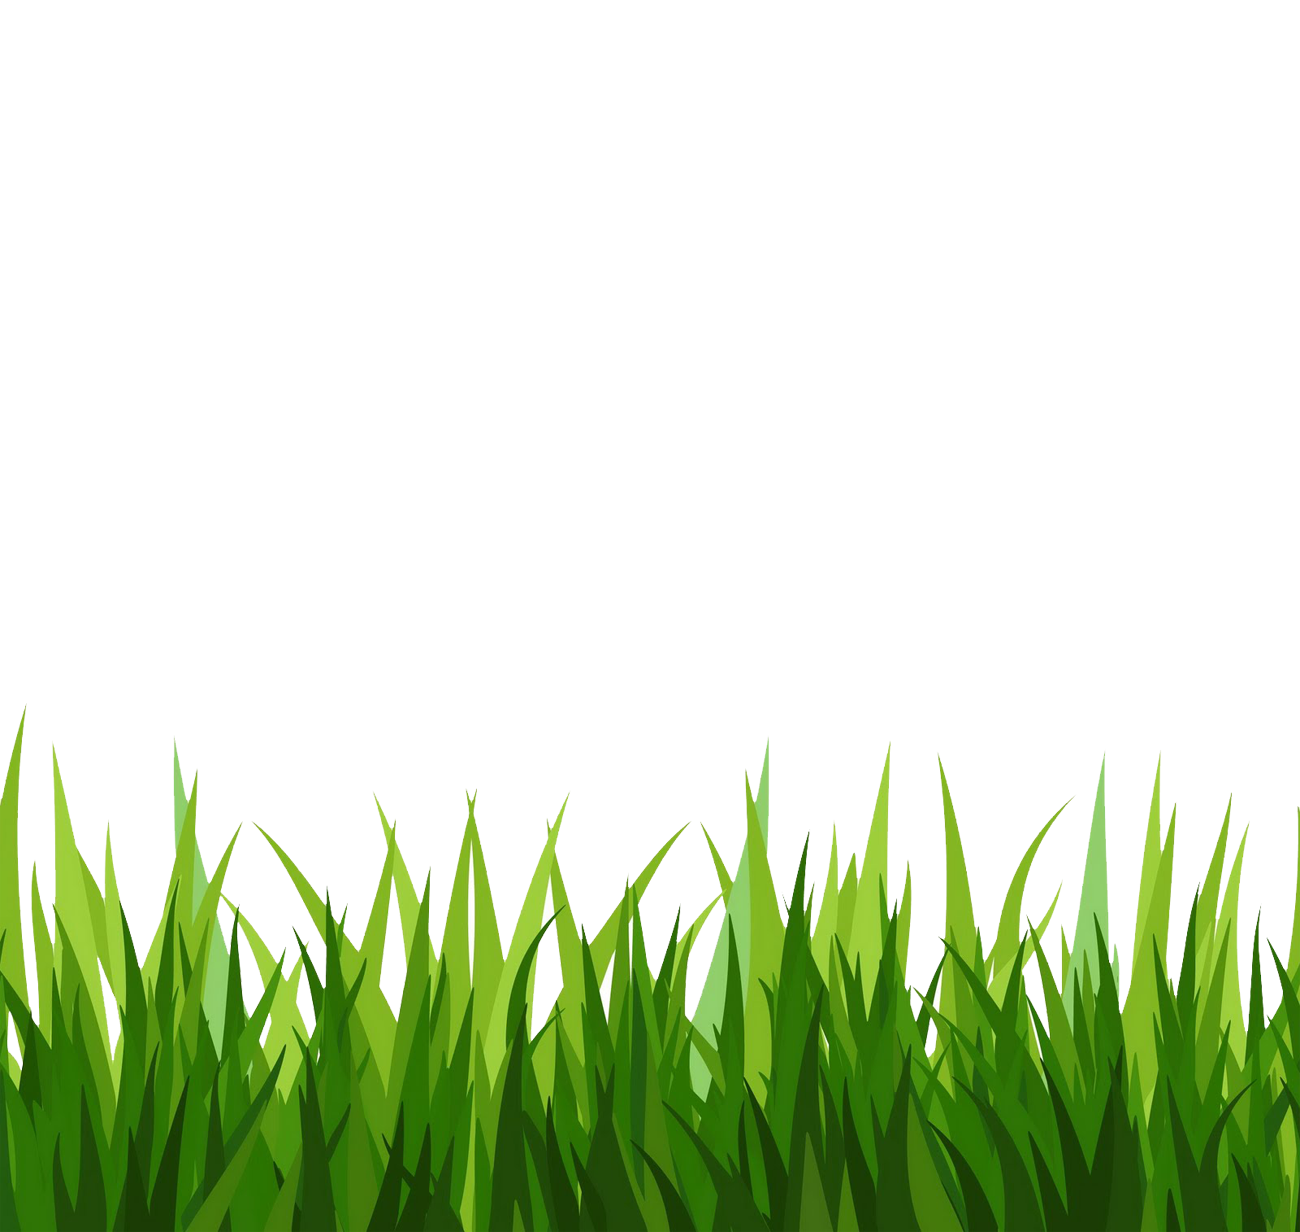 picture black and white stock Grass png images free. Yard clipart grassy path